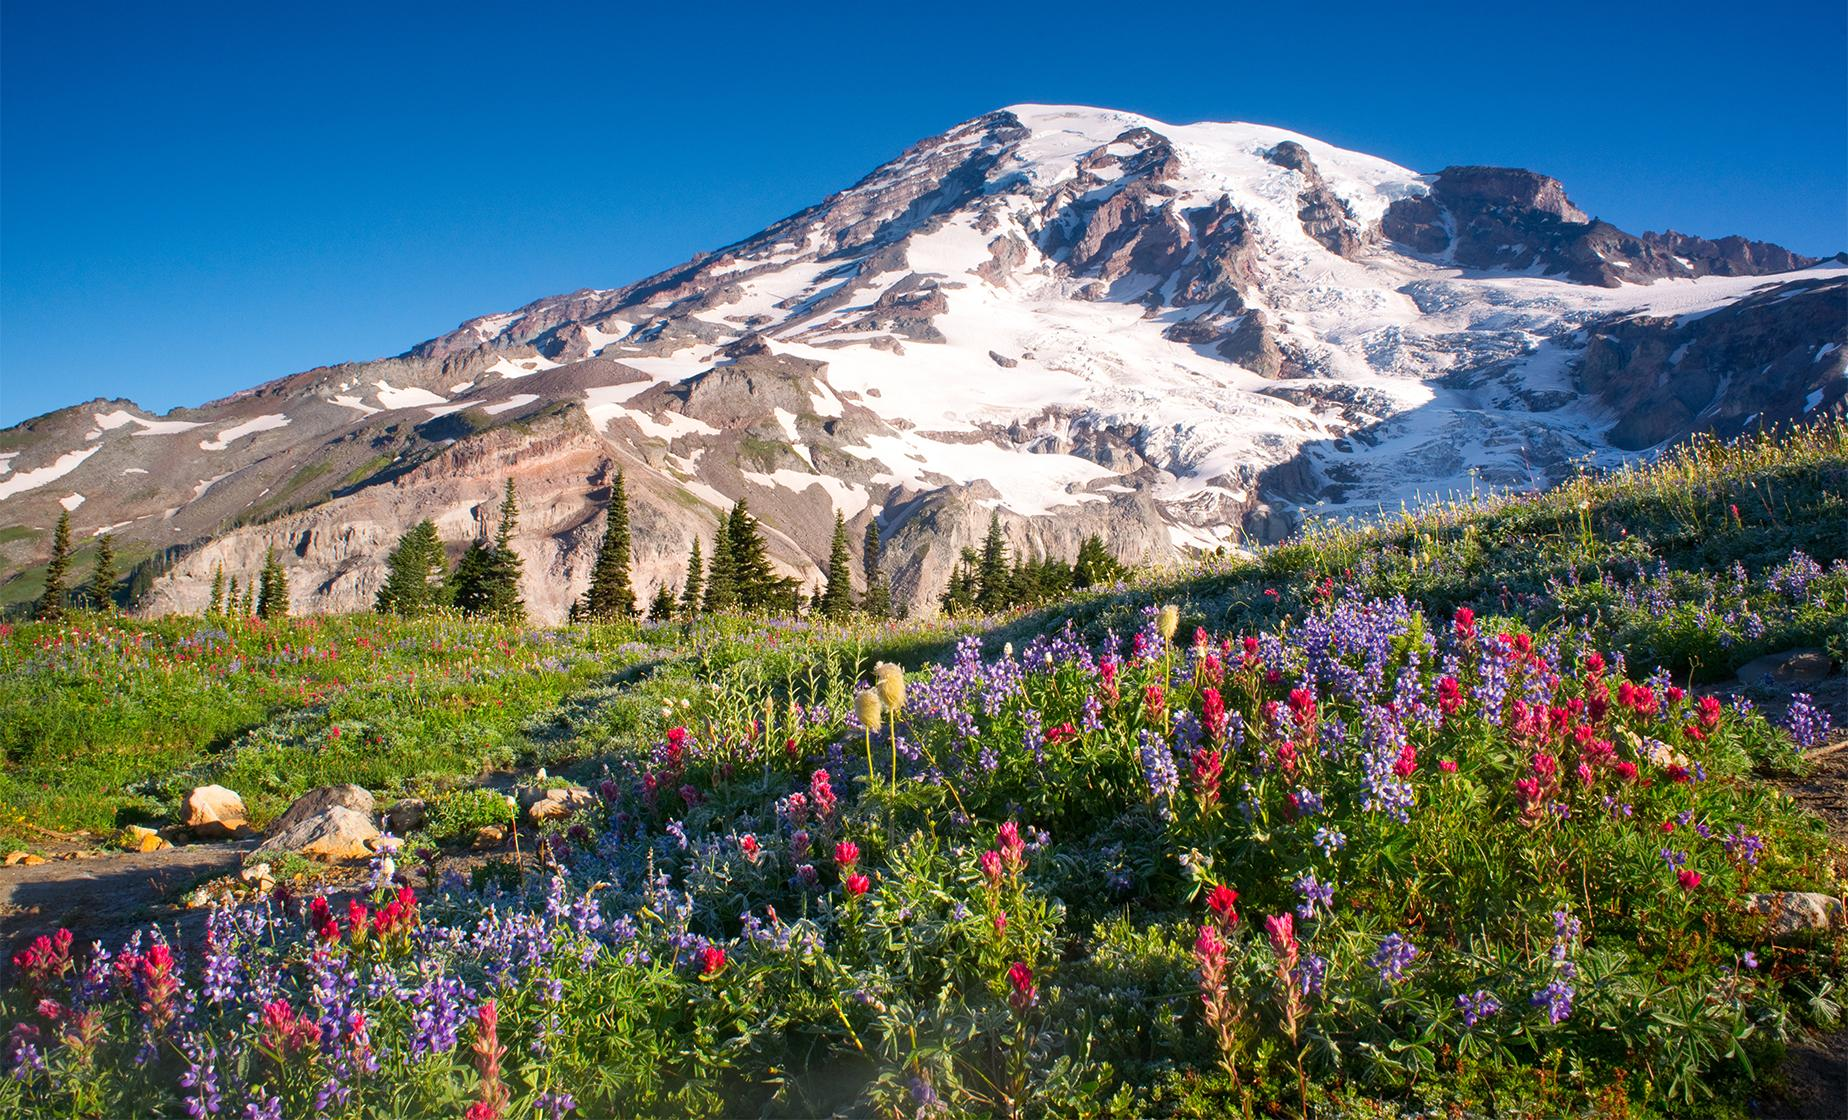 Mount Rainier National Park Tour in Seattle (Narada Falls, Glacial Moraines)